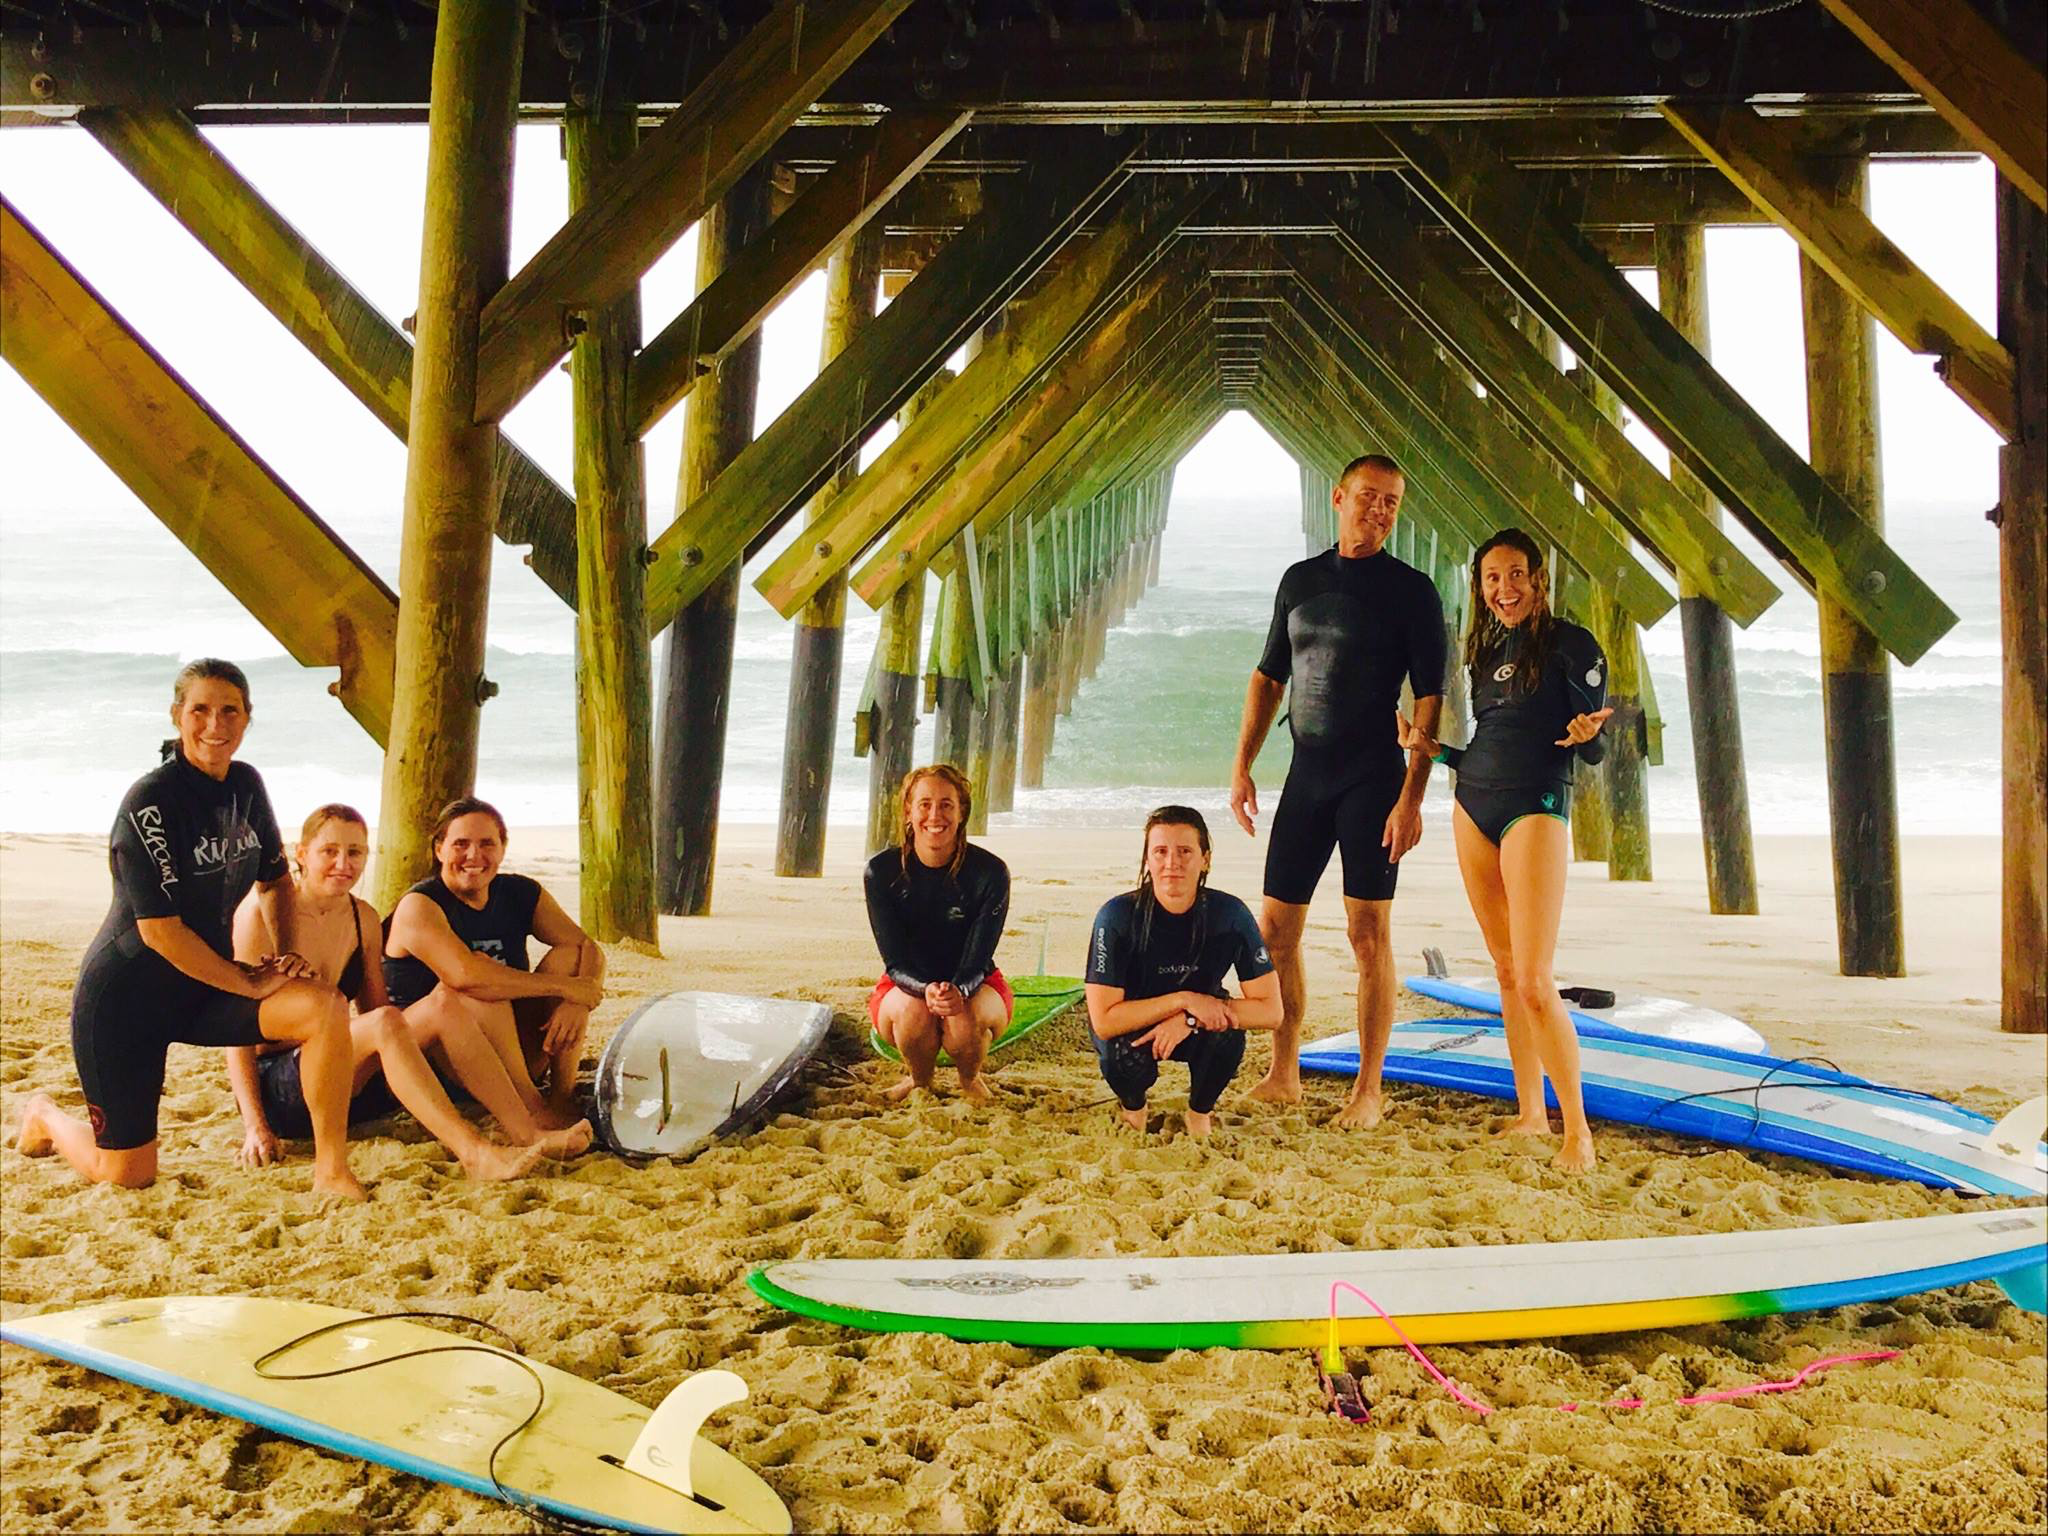 WB surf 'family' gives women, novices a tribe of their own